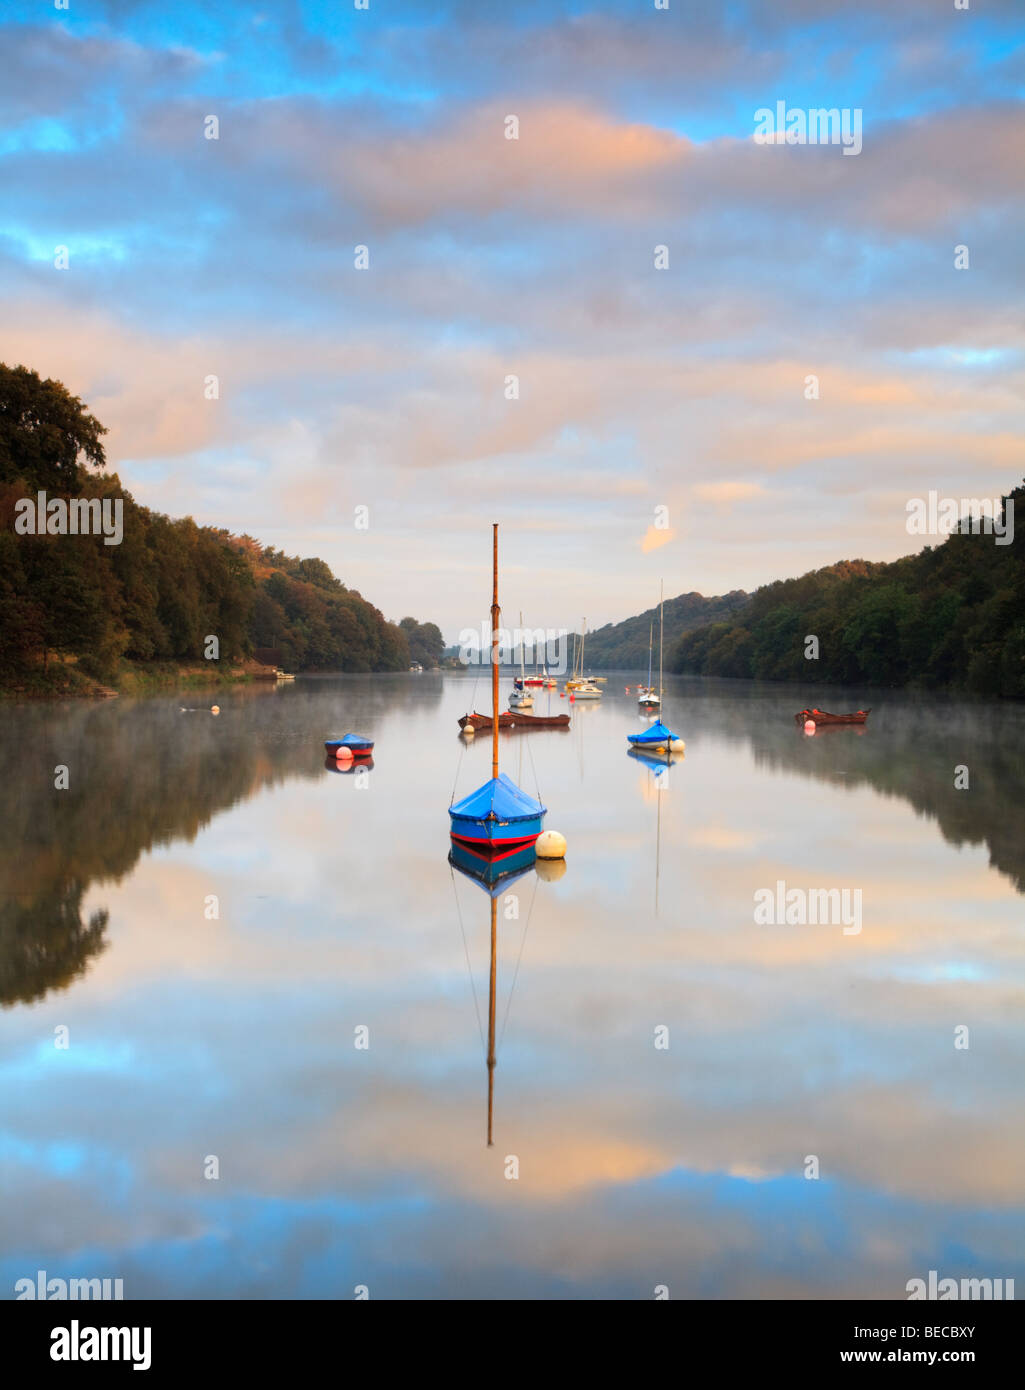 Sunrise over the tranquil lake in Rudyard, Nr. Leek, in Staffordshire - Stock Image